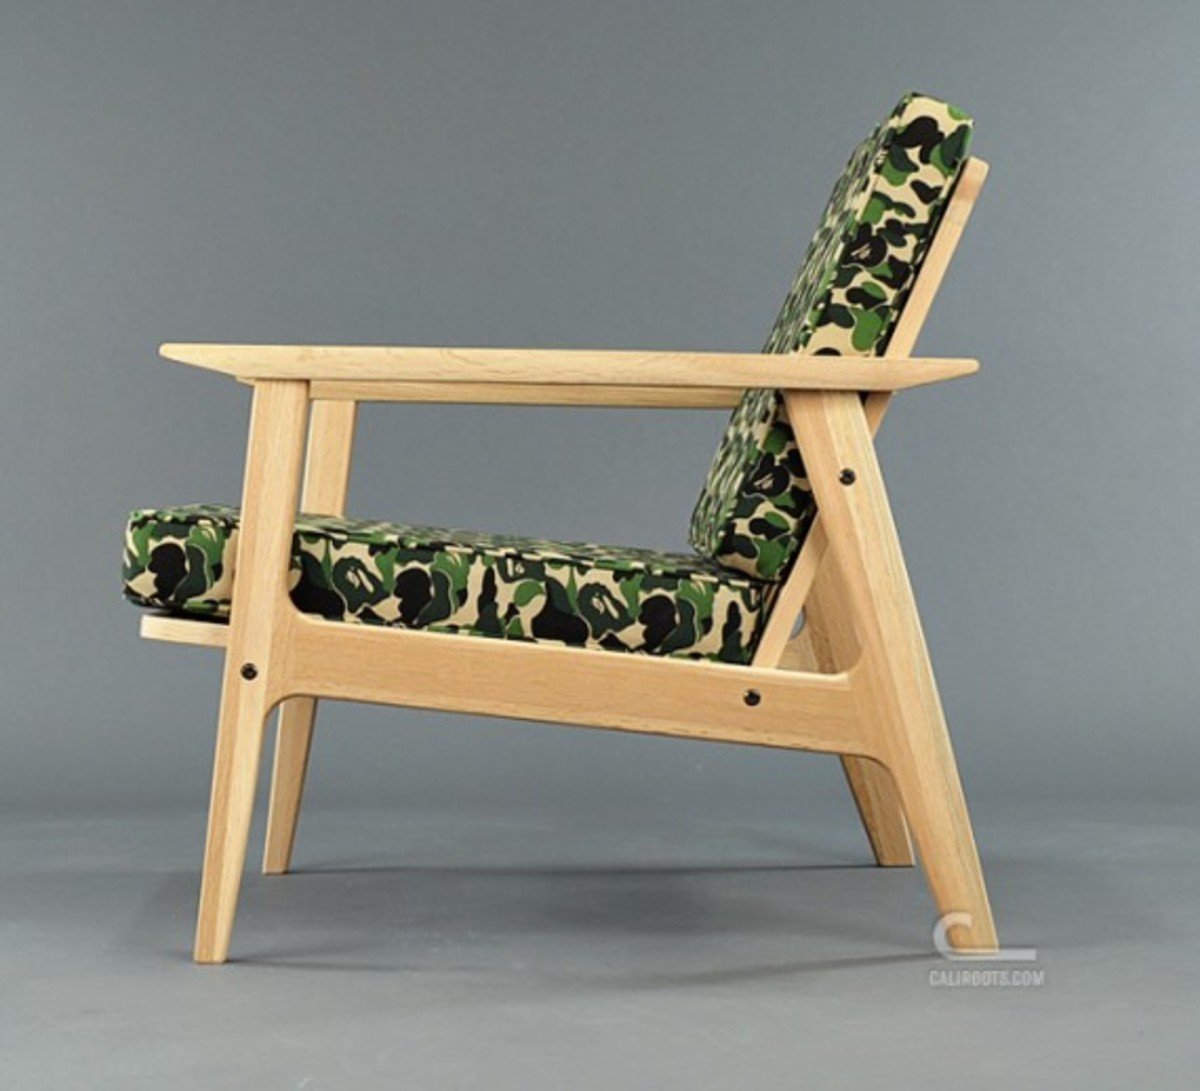 a-bathing-ape-medicom-toy-karimoku-bape-camo-furniture-13